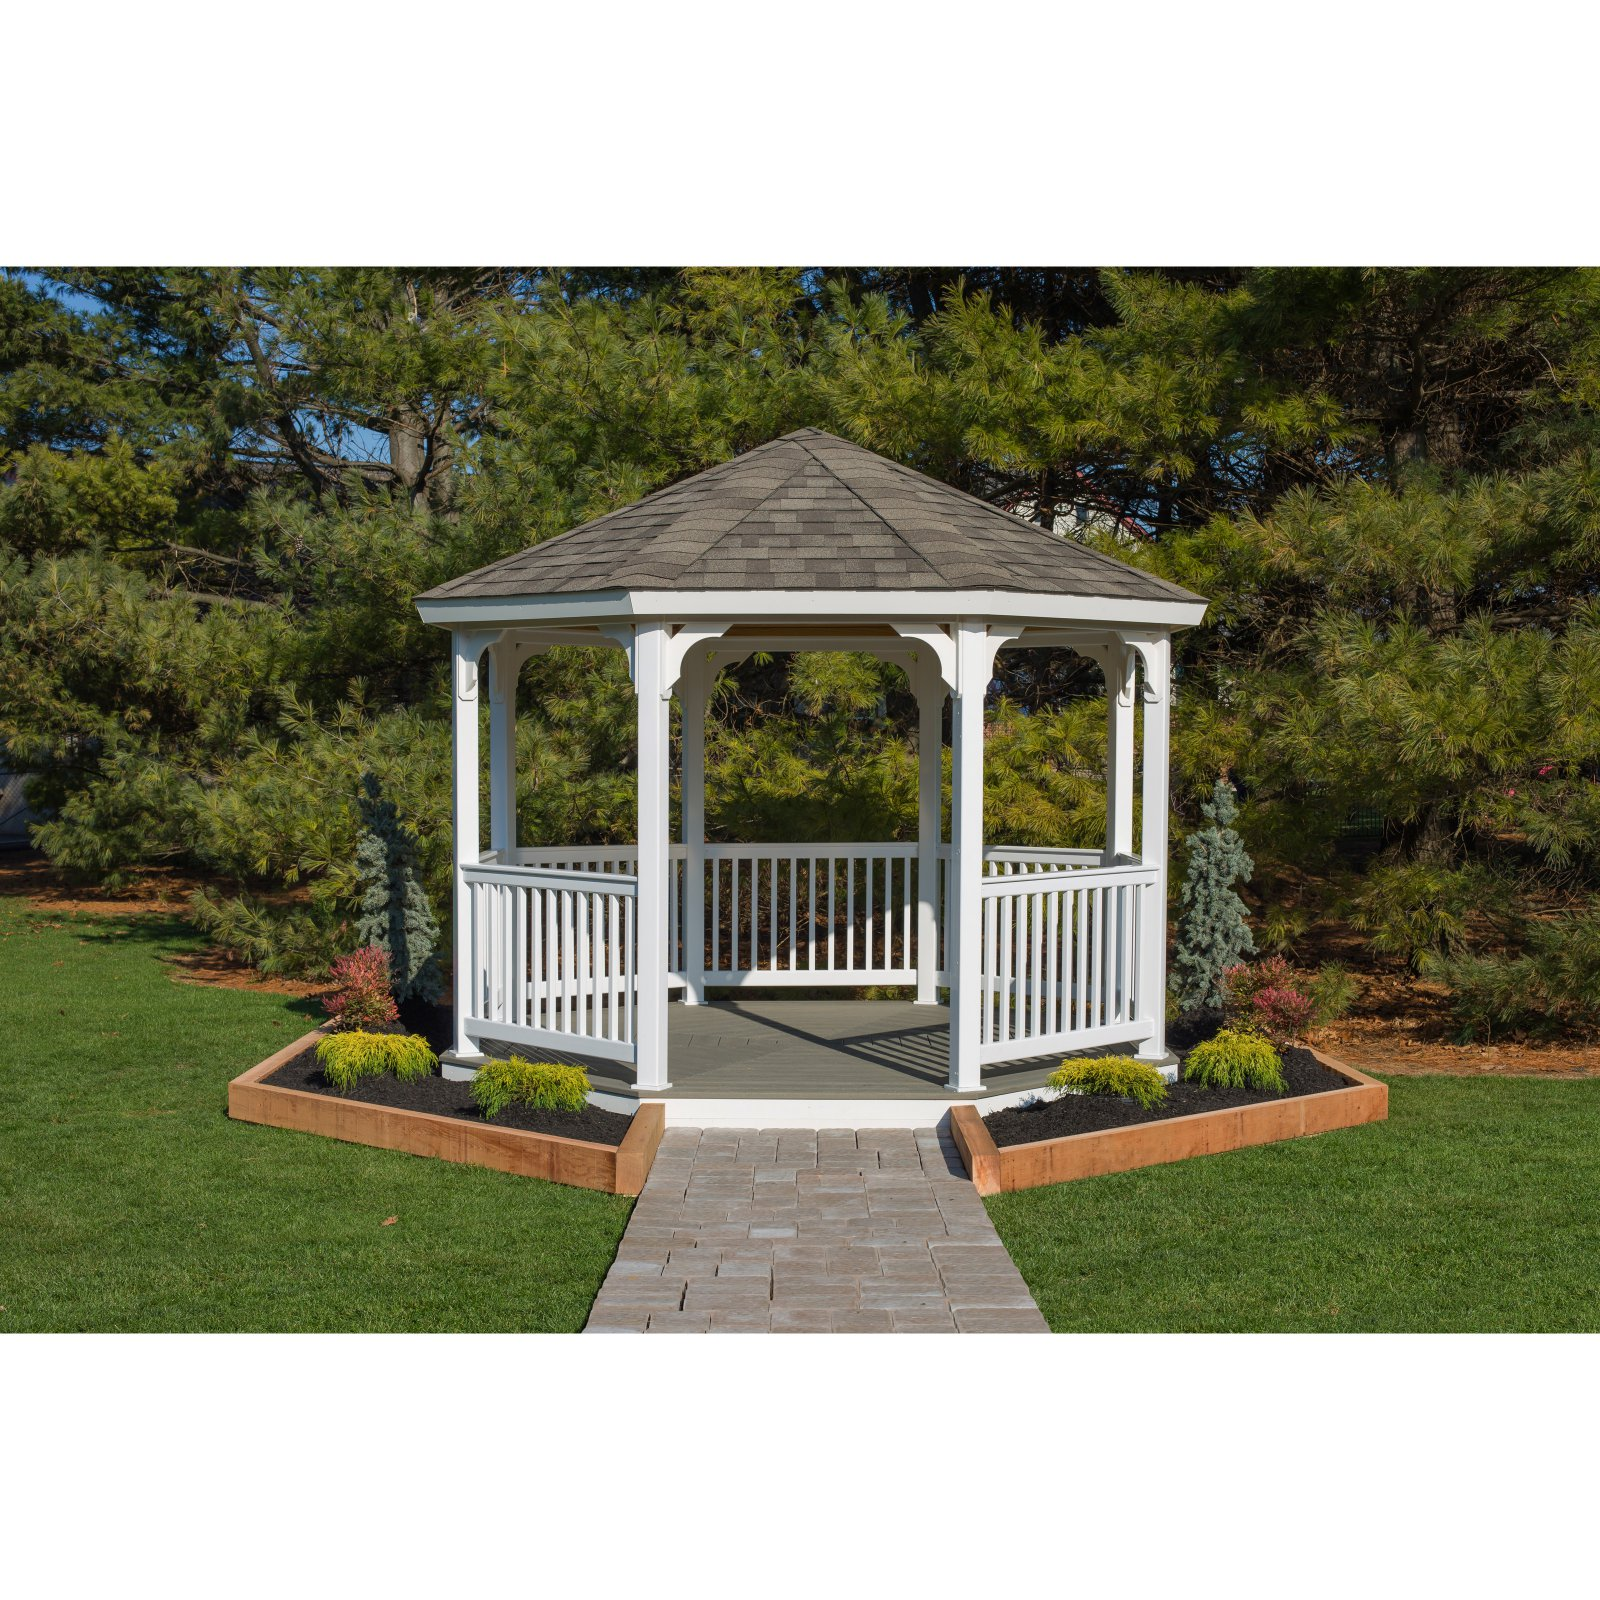 YardCraft 12 ft. Vinyl Octagon Gazebo - no floor